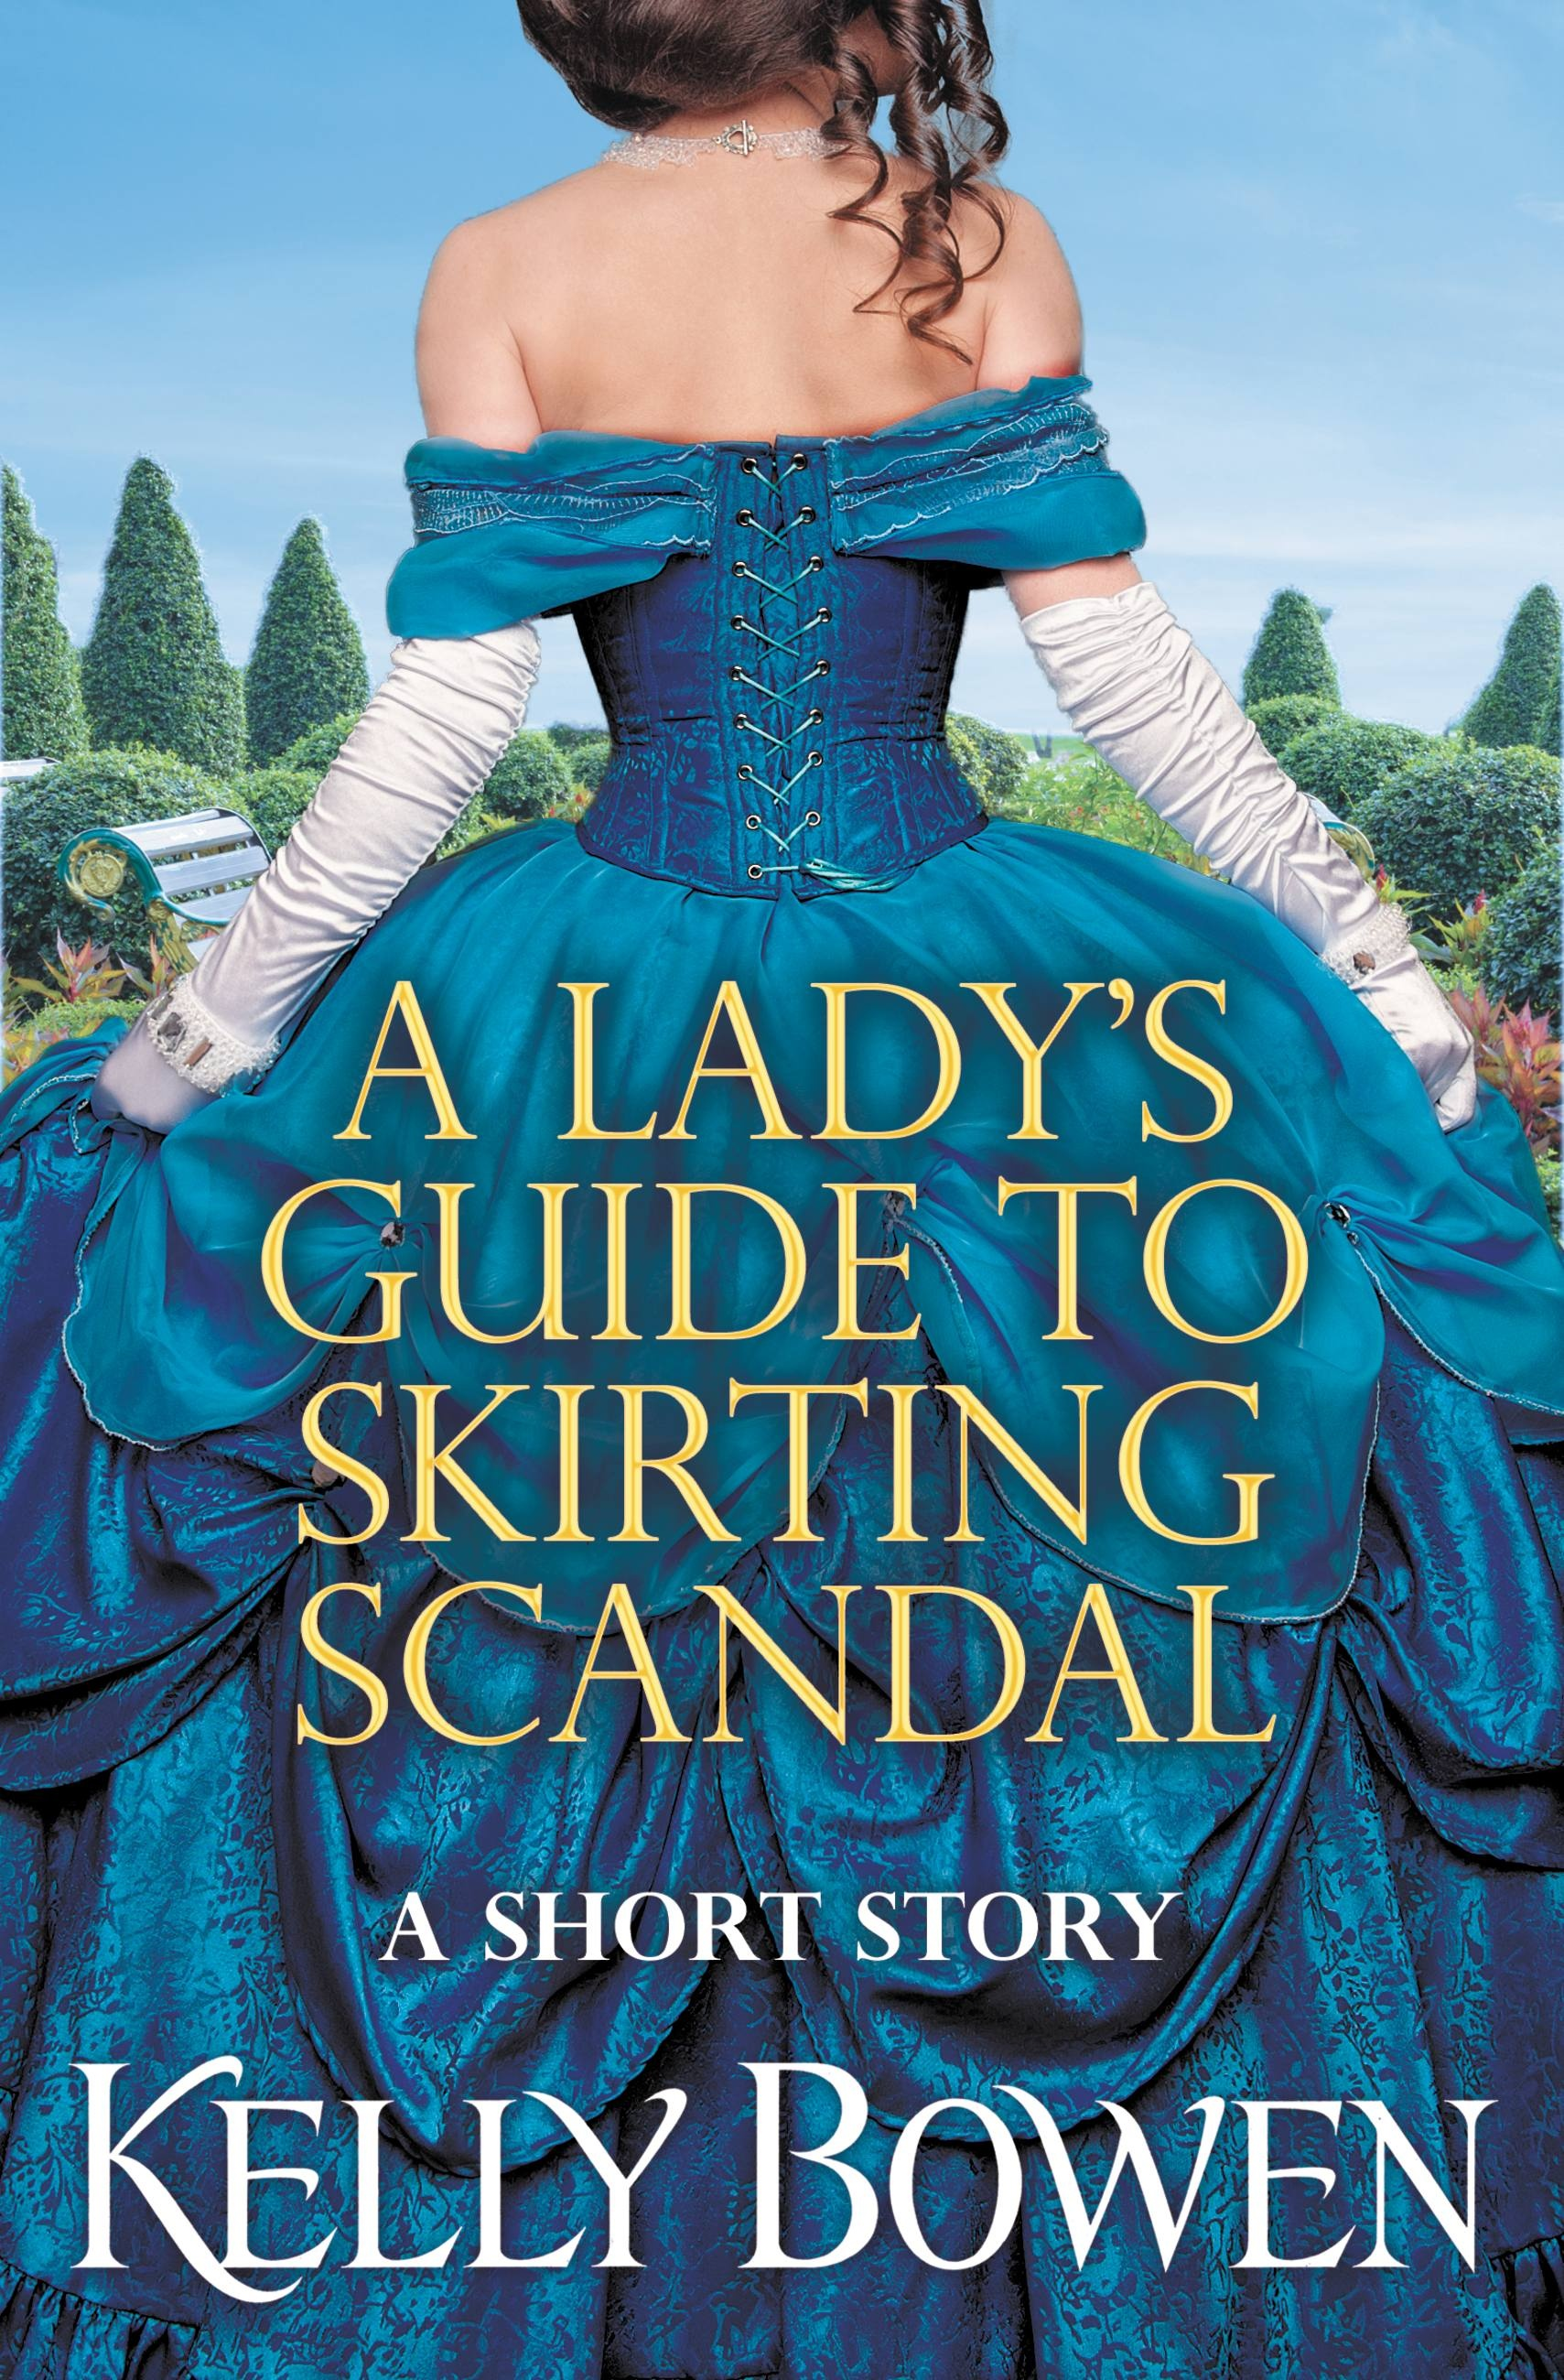 A Lady's Guide to Skirting Scandal by Kelly Bowen ...